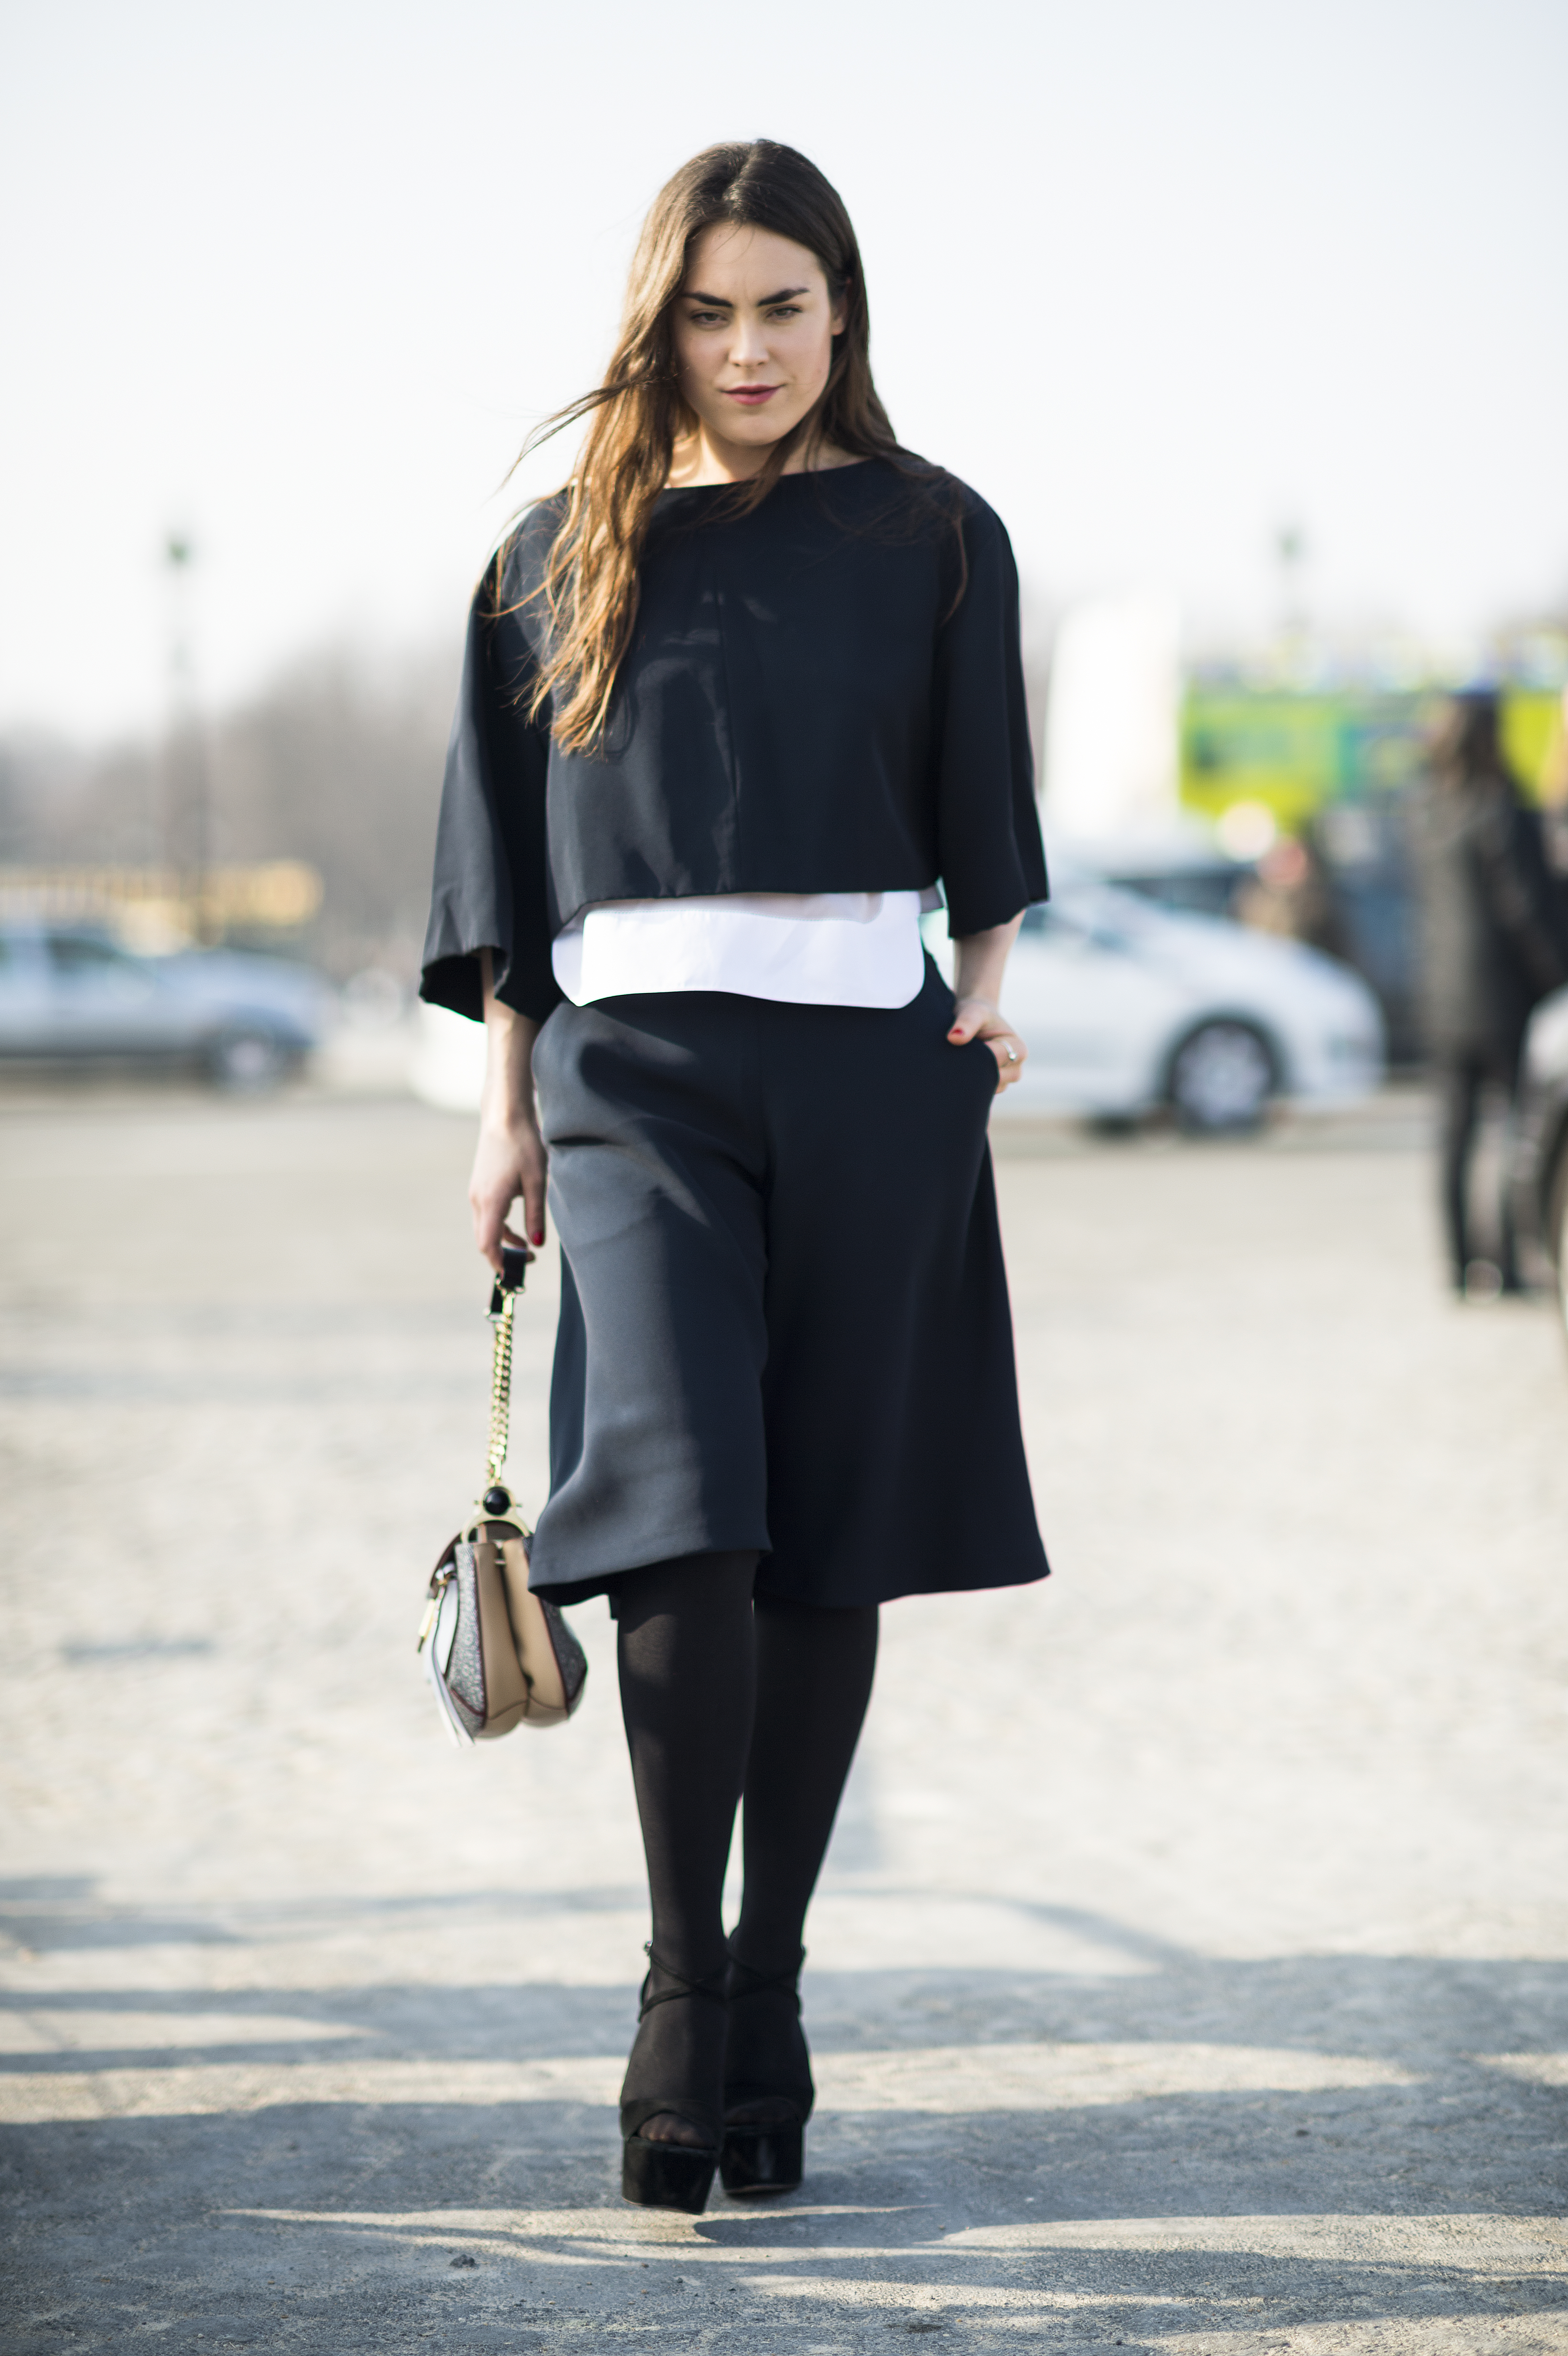 Minimalist Silhouettes In Sharp Cuts Gave This Look More Personailty Tr S Chic The Best